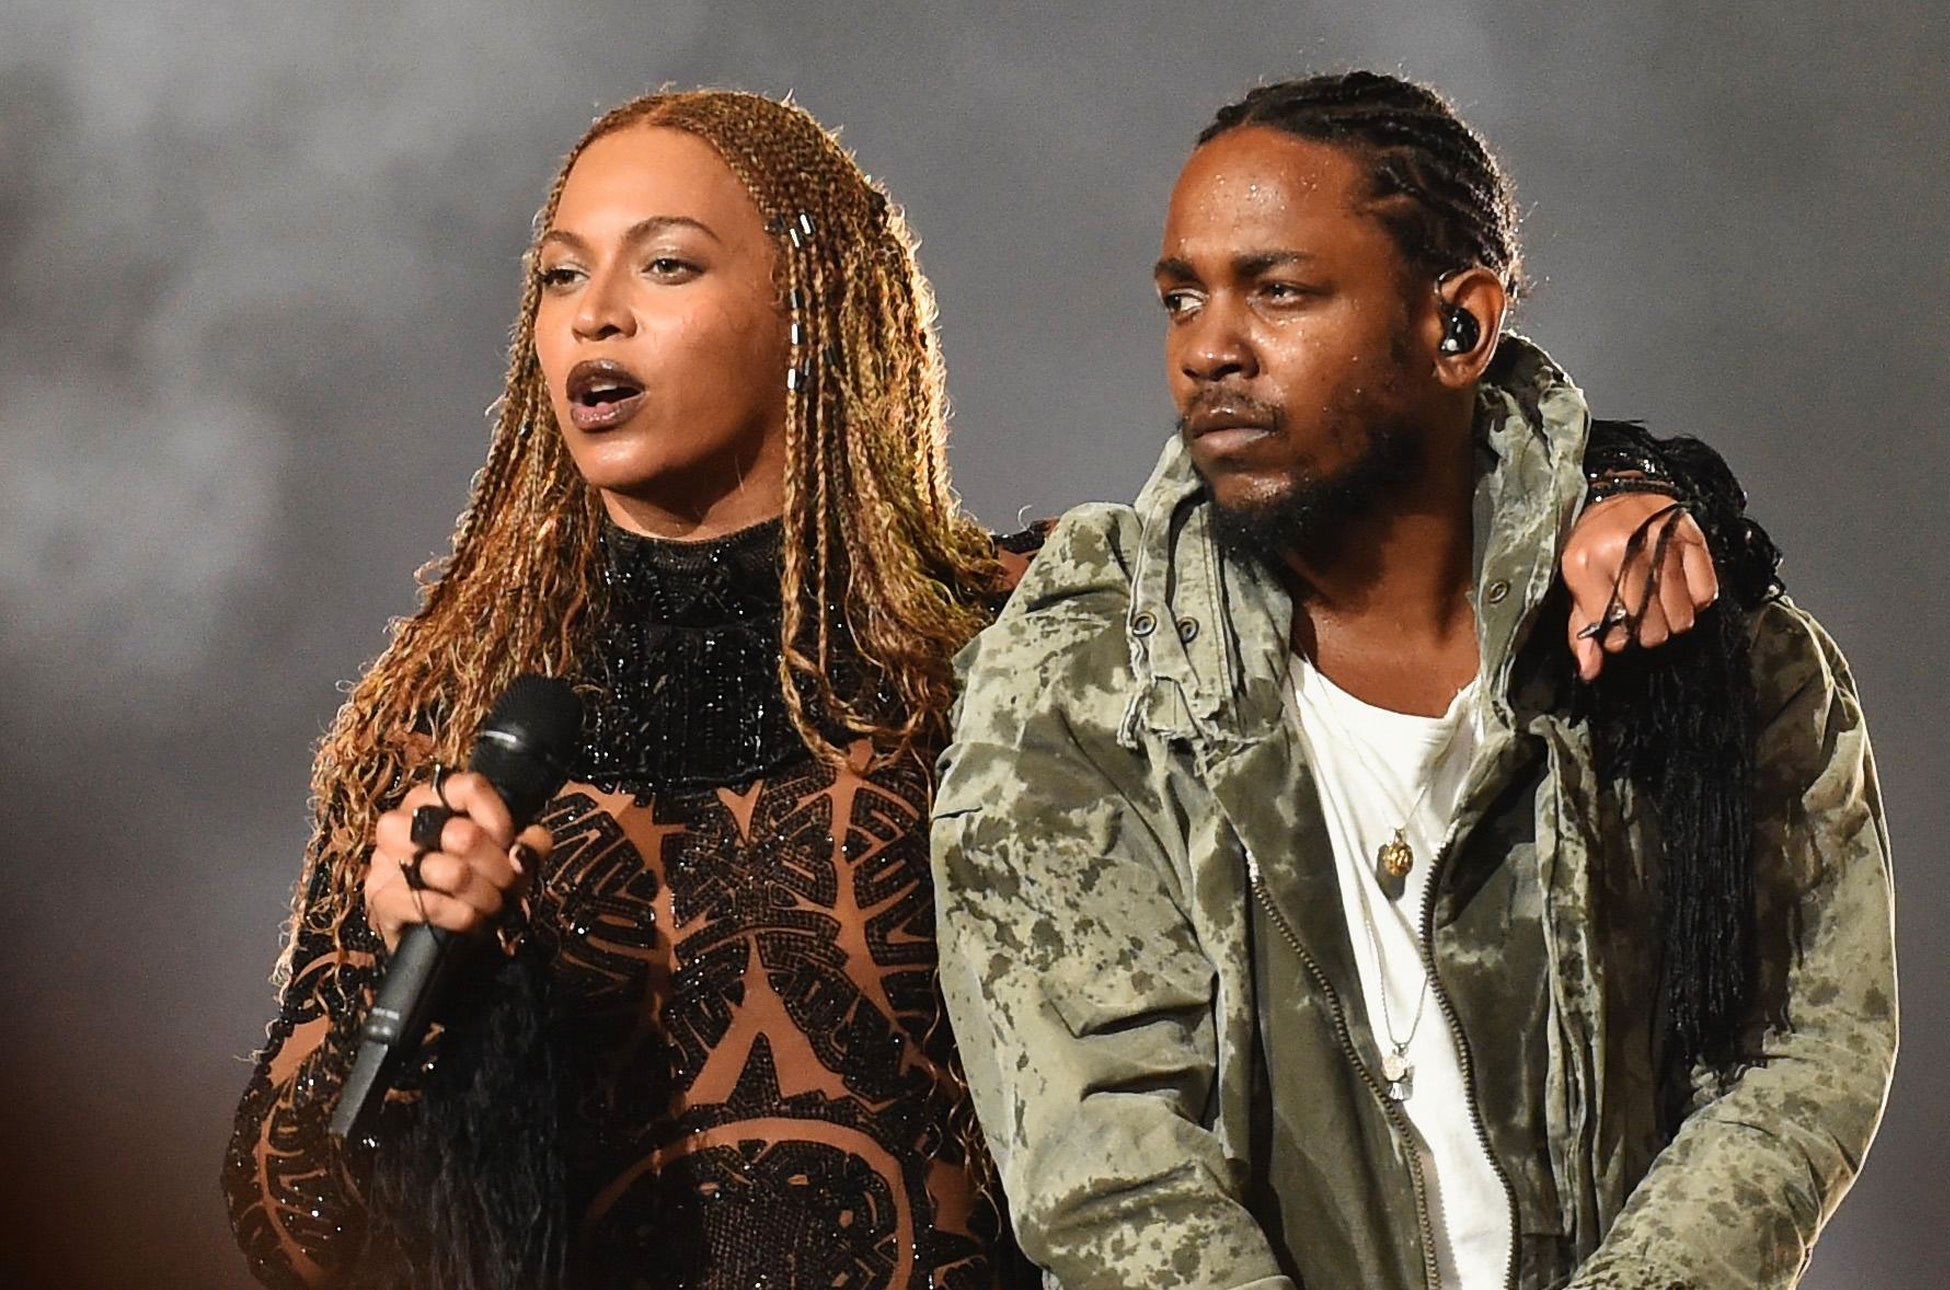 ce5ade9fecf Watch Beyoncé   Kendrick Lamar Open The 2016 BET Awards